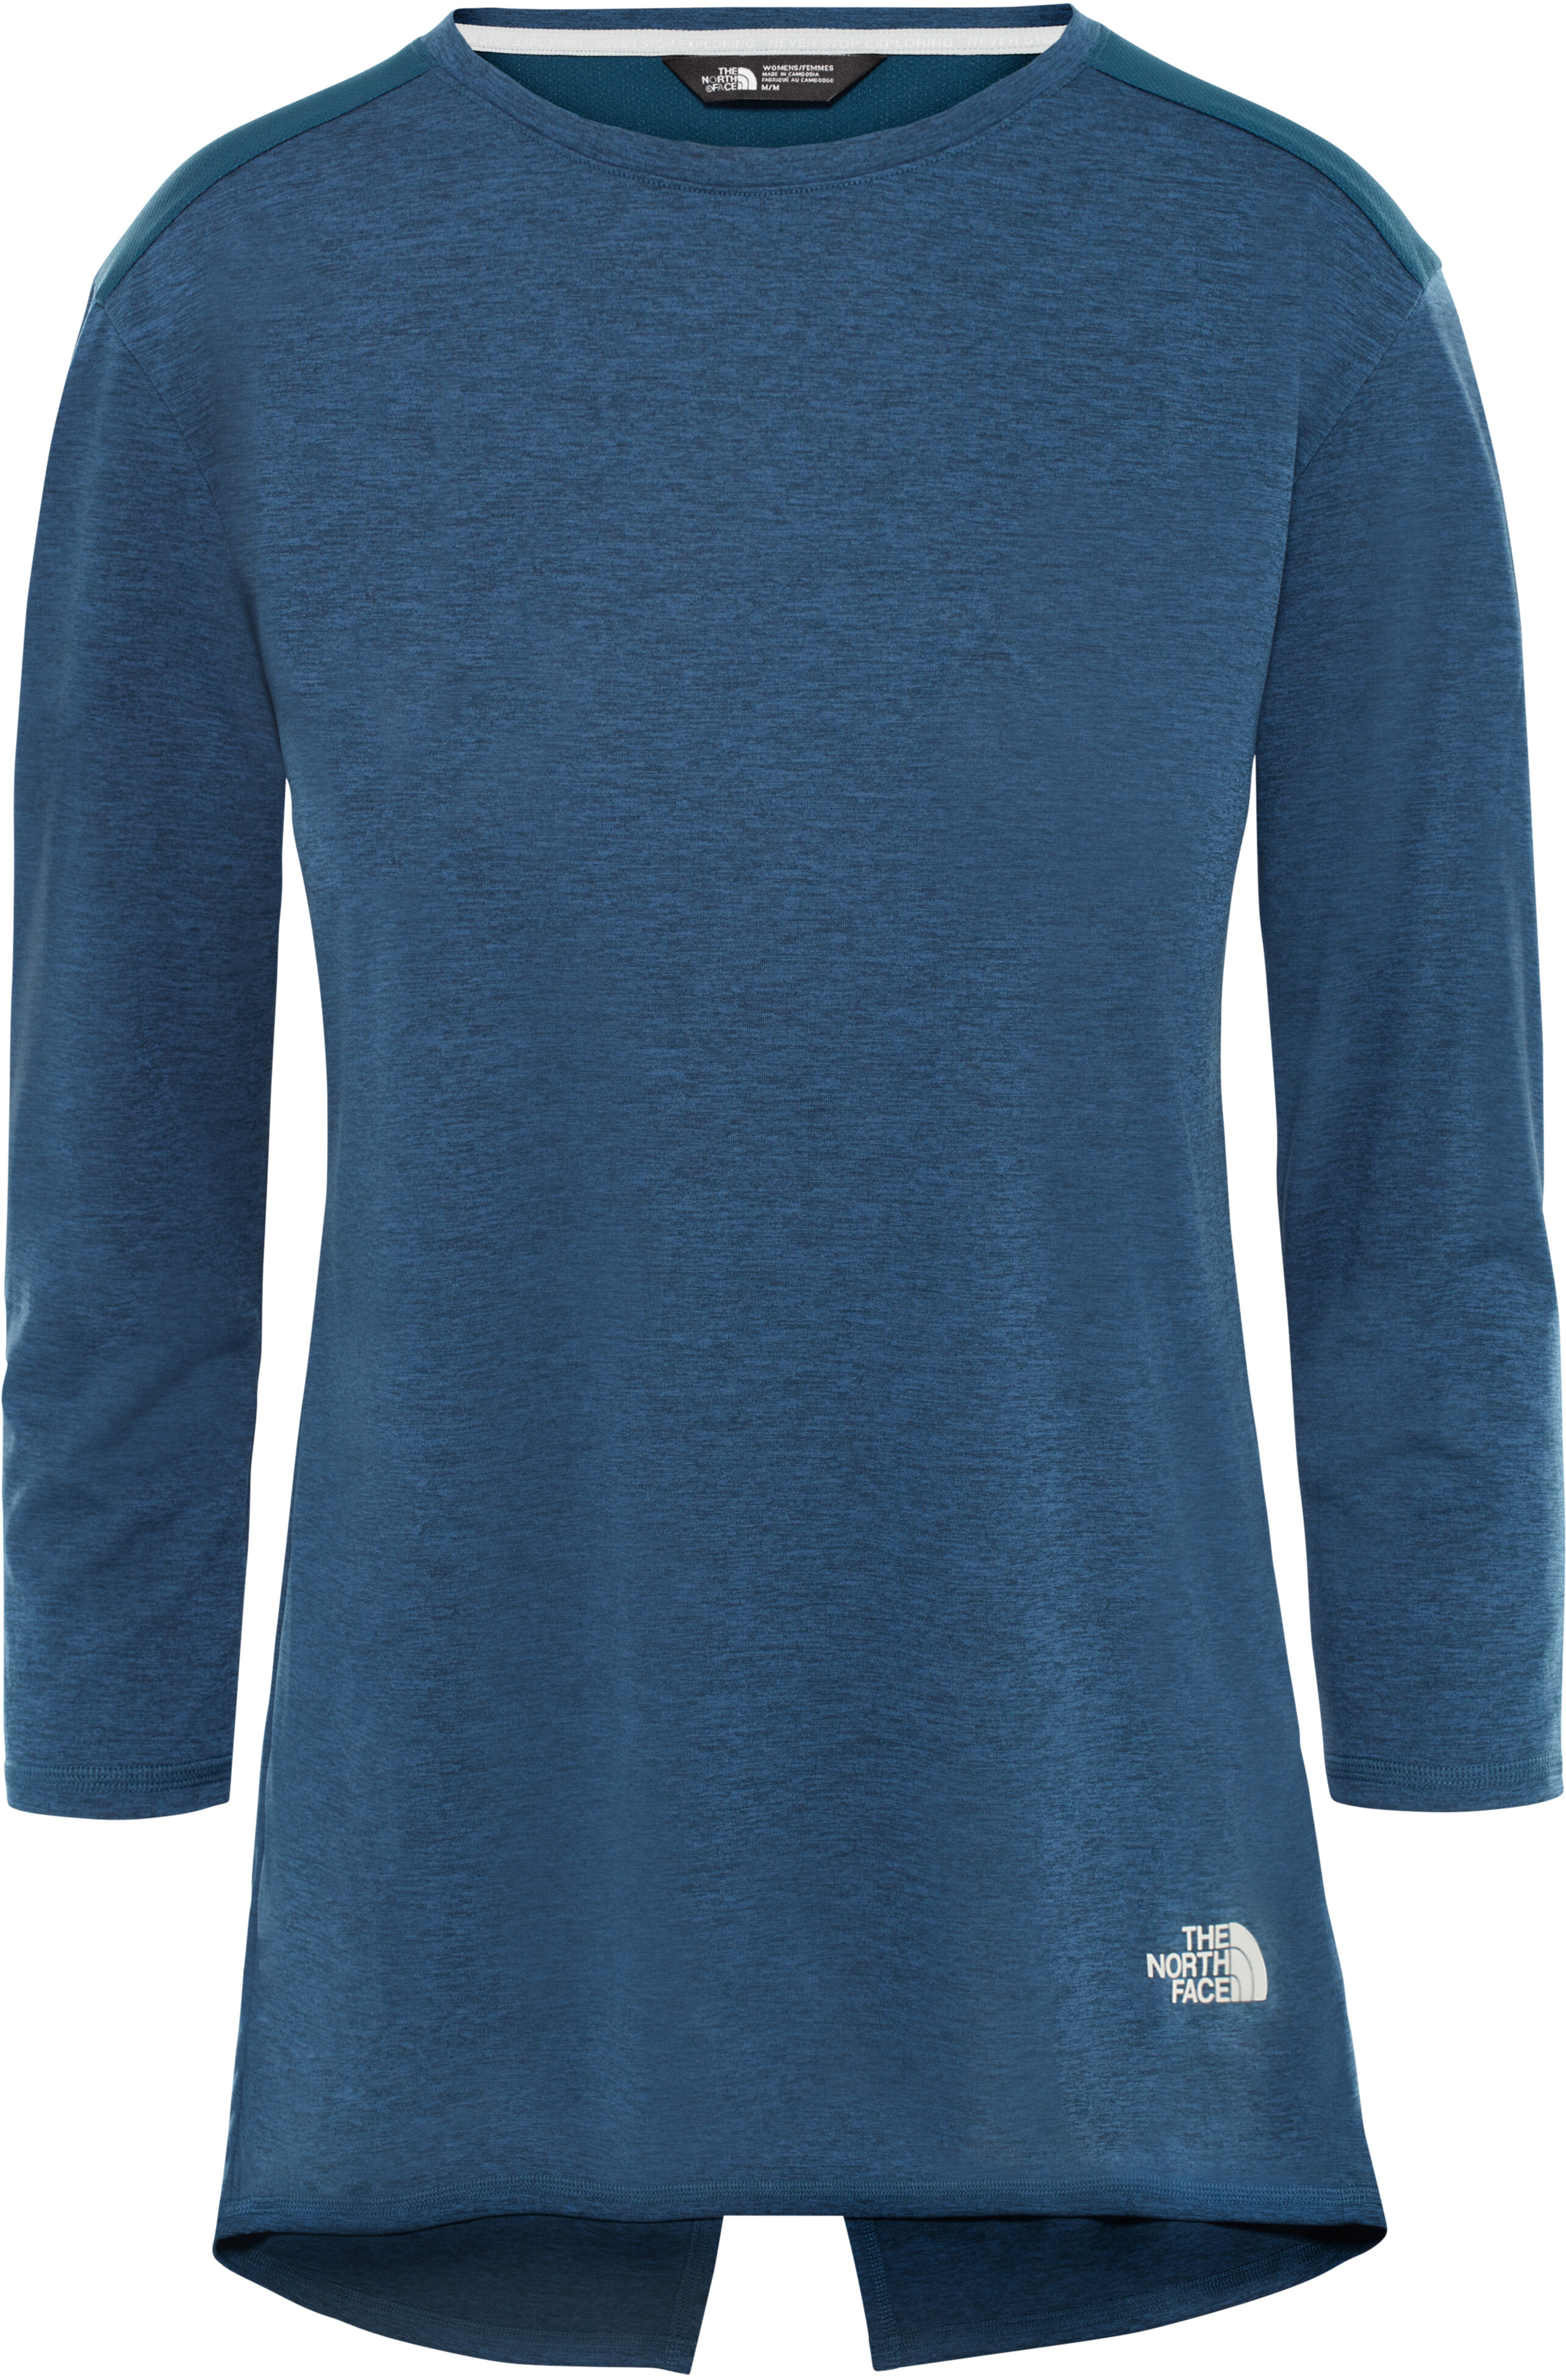 dd9cdd3cfd3 The North Face Inlux Hardloopshirt lange mouwen Dames blauw l Online ...